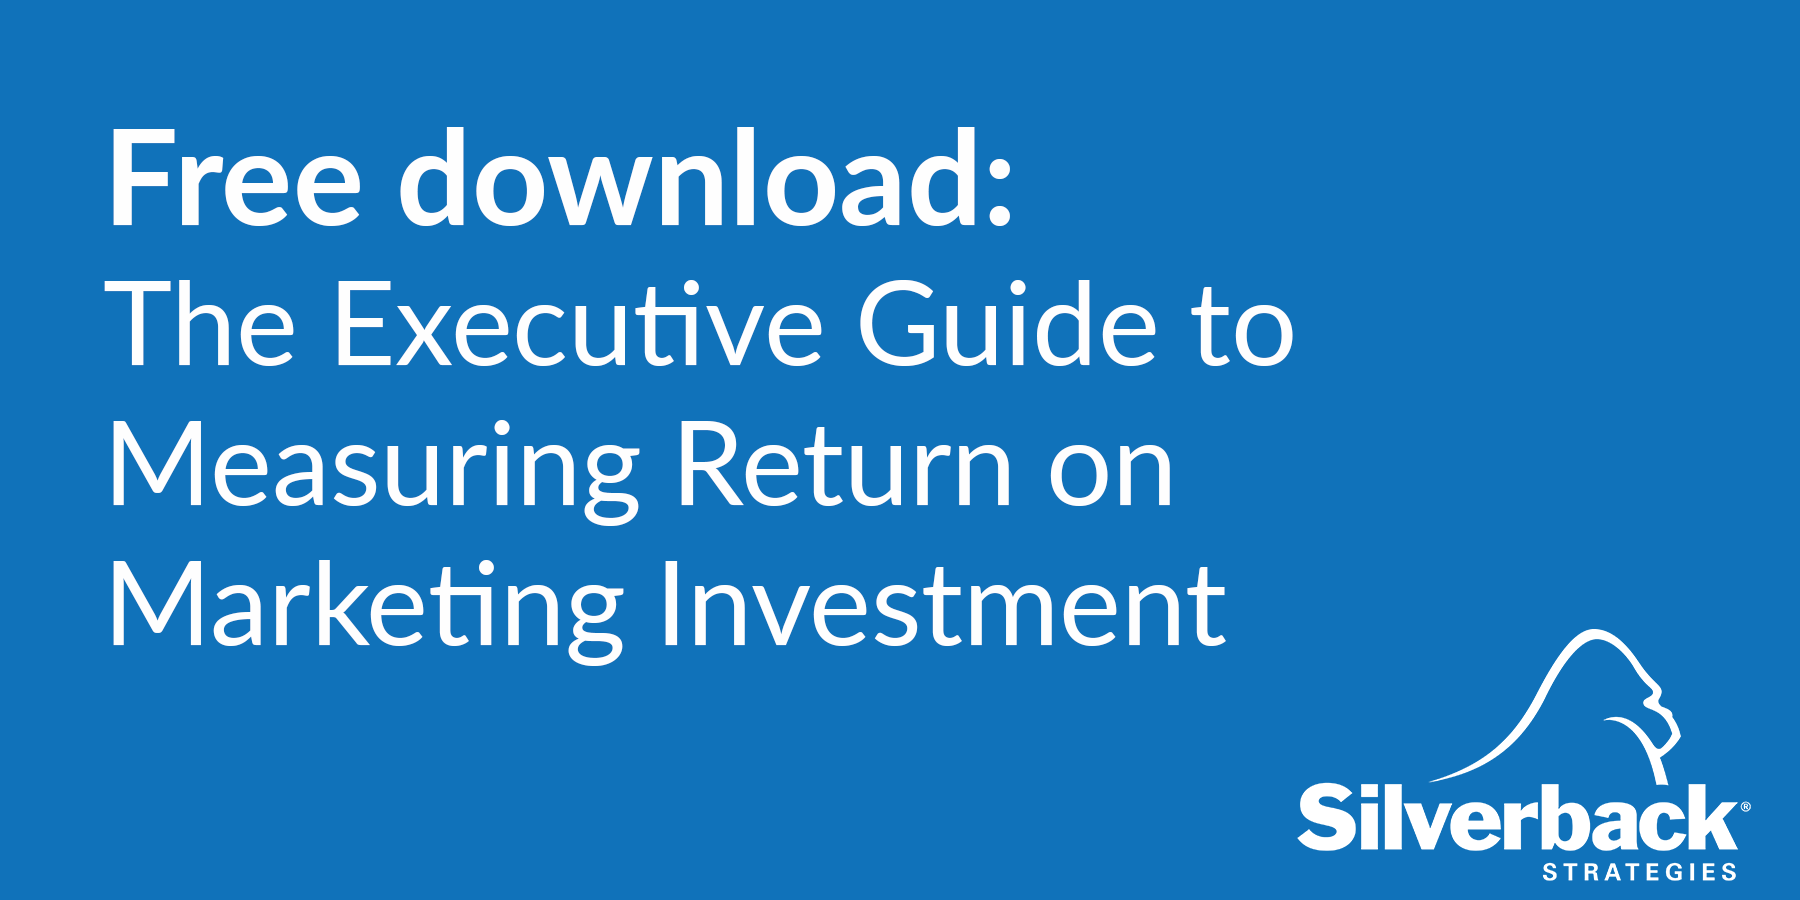 The Executive Guide to Measuring Return on Marketing Investment